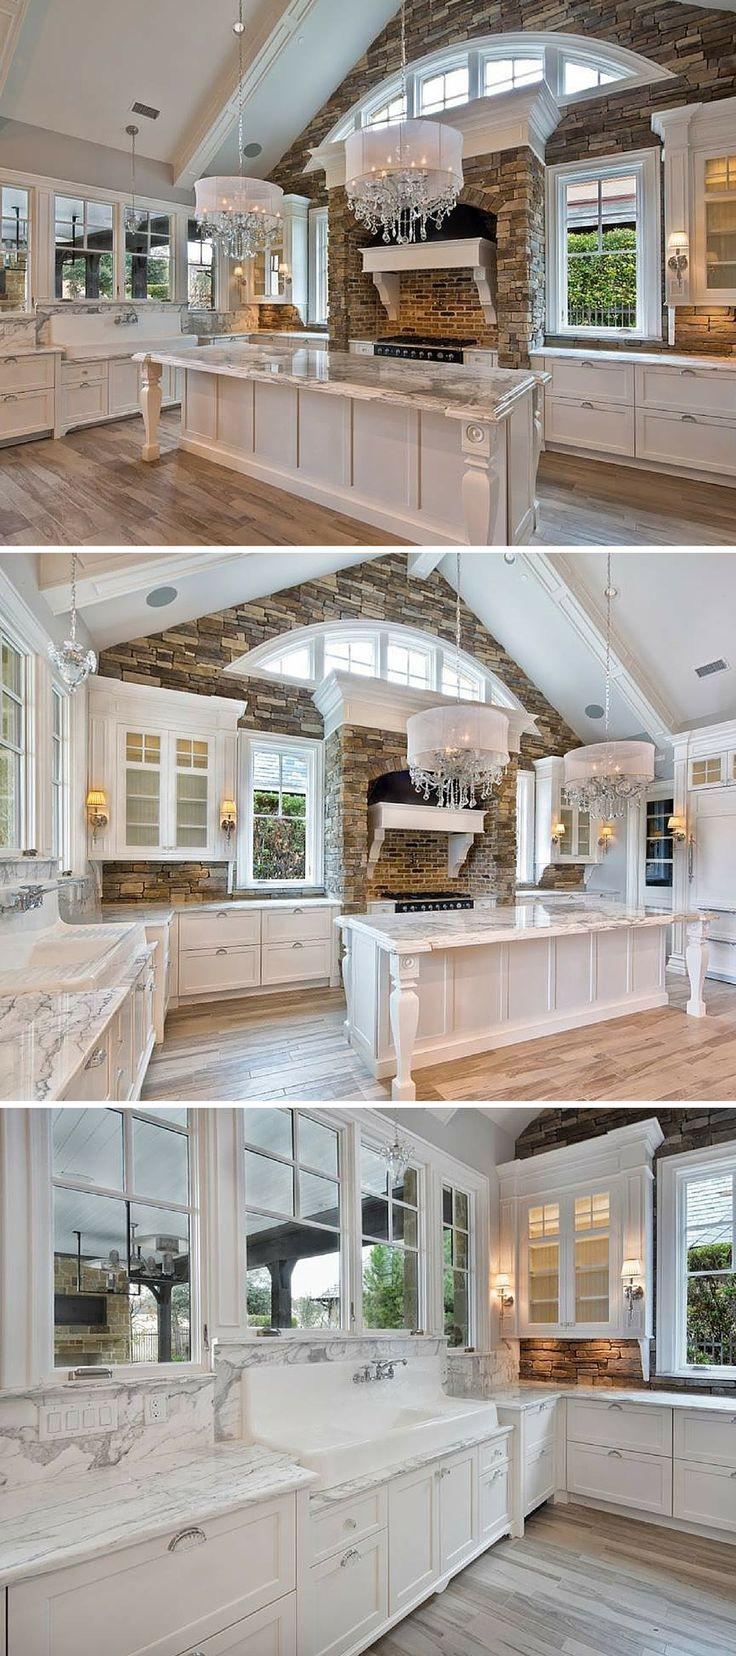 Wood-Mode kitchen with white cabinets and marble countertops…